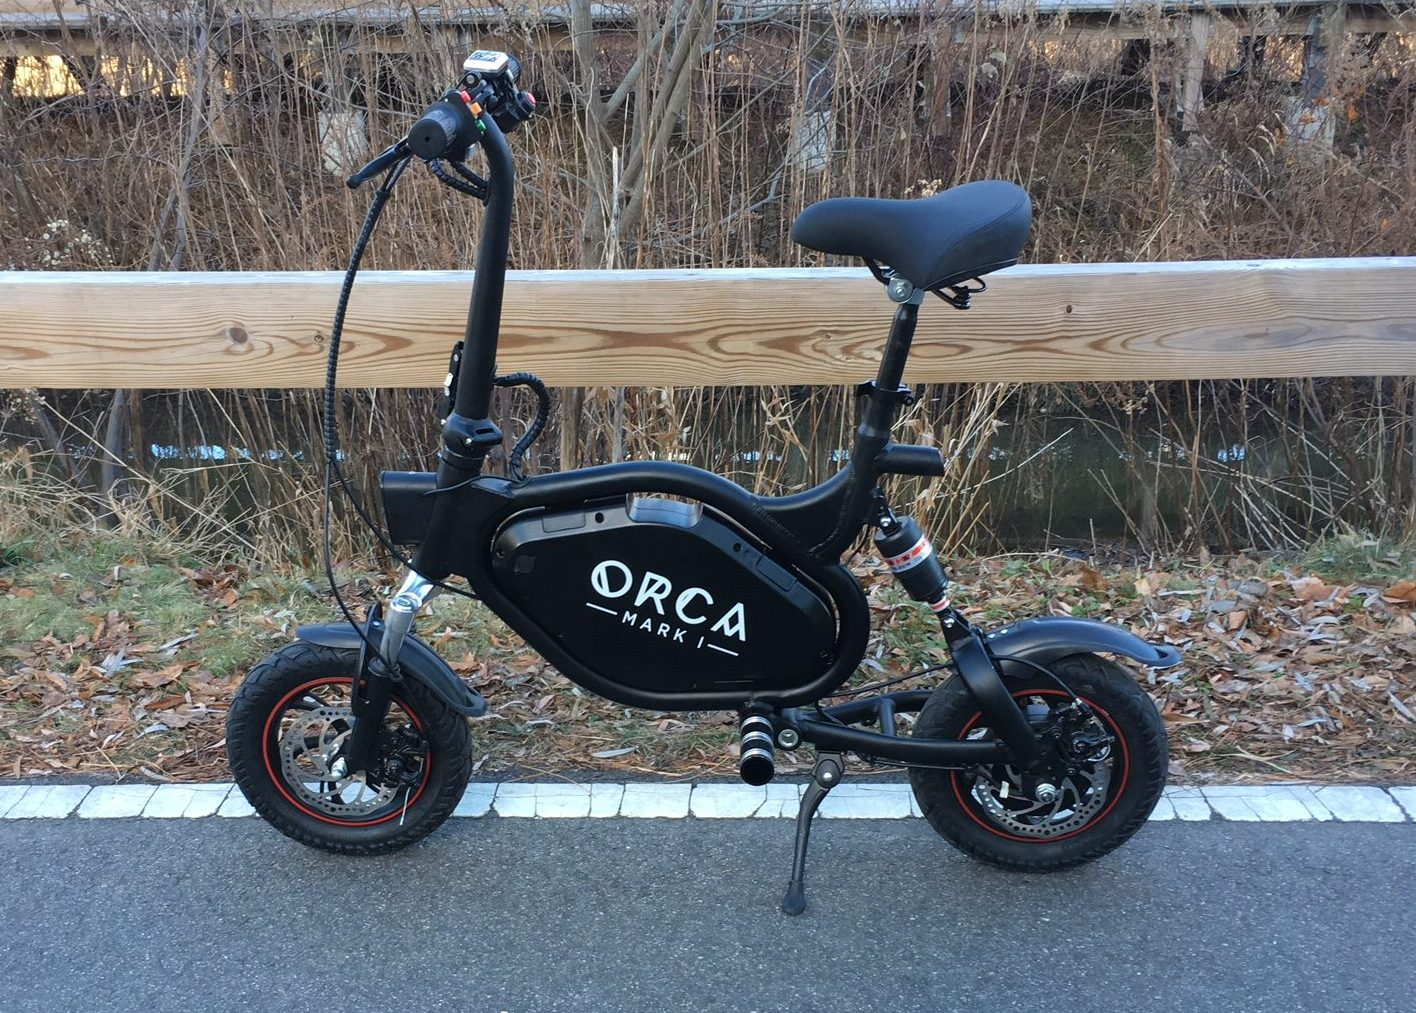 Review: Orca Mark I is a powerful little folding crotch rocket